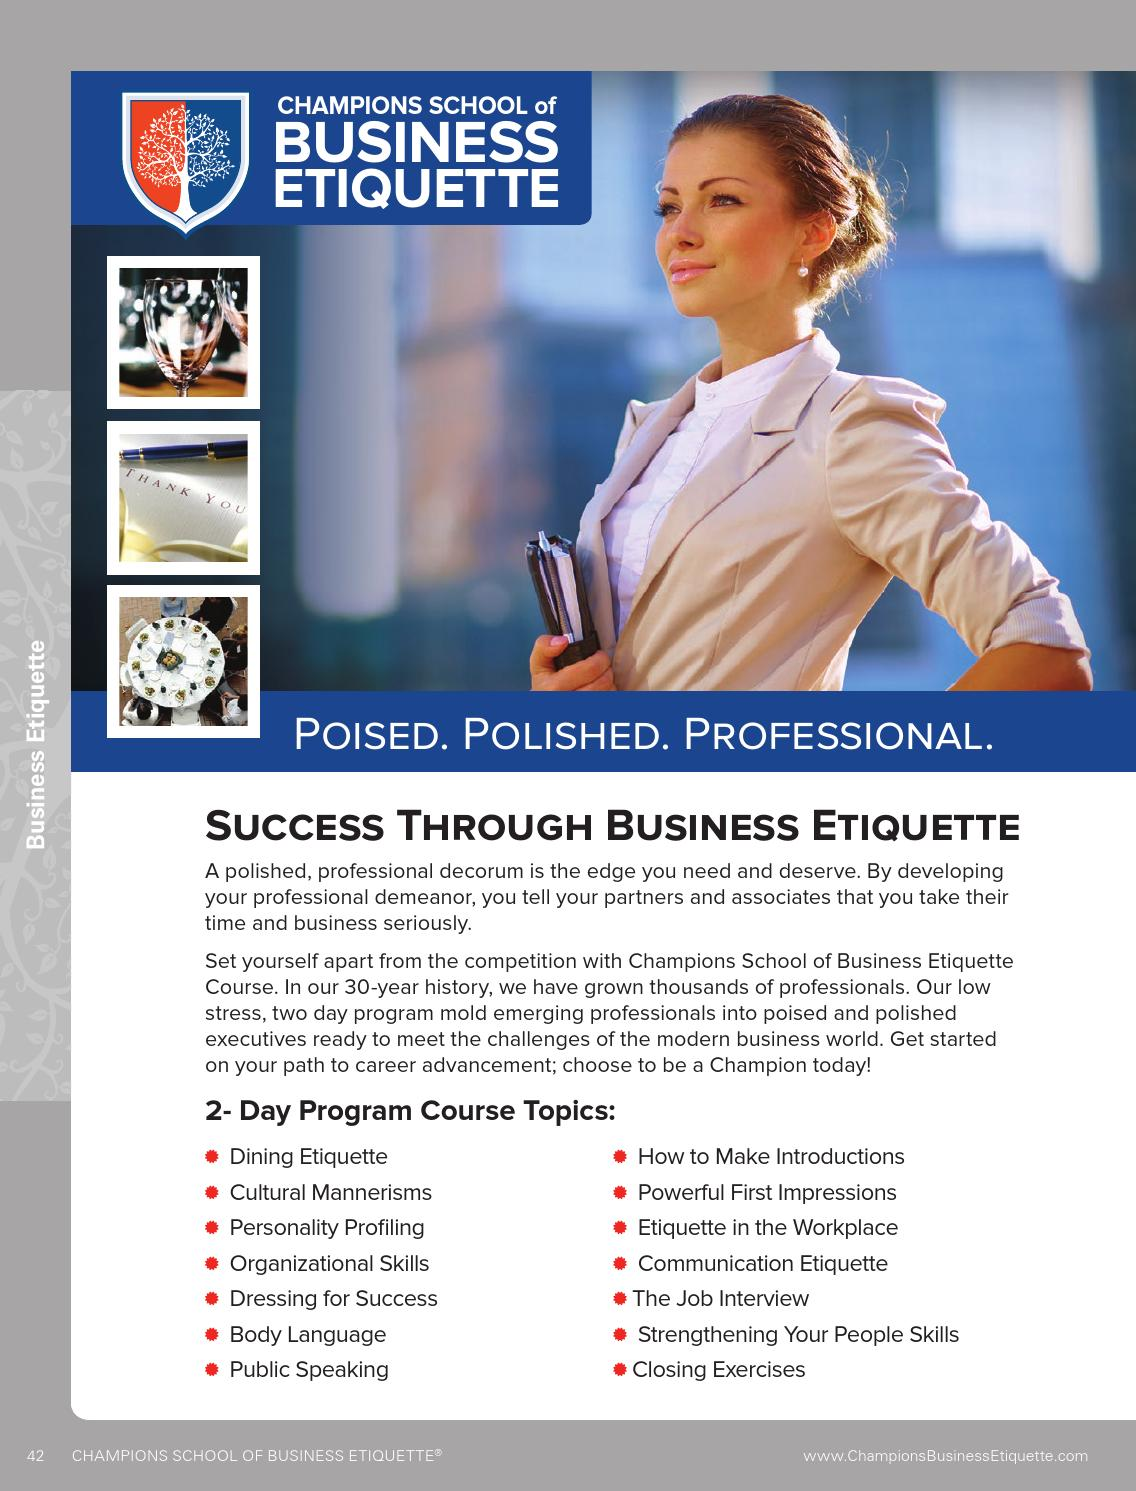 Powerful Professional Image: Dressing for Success